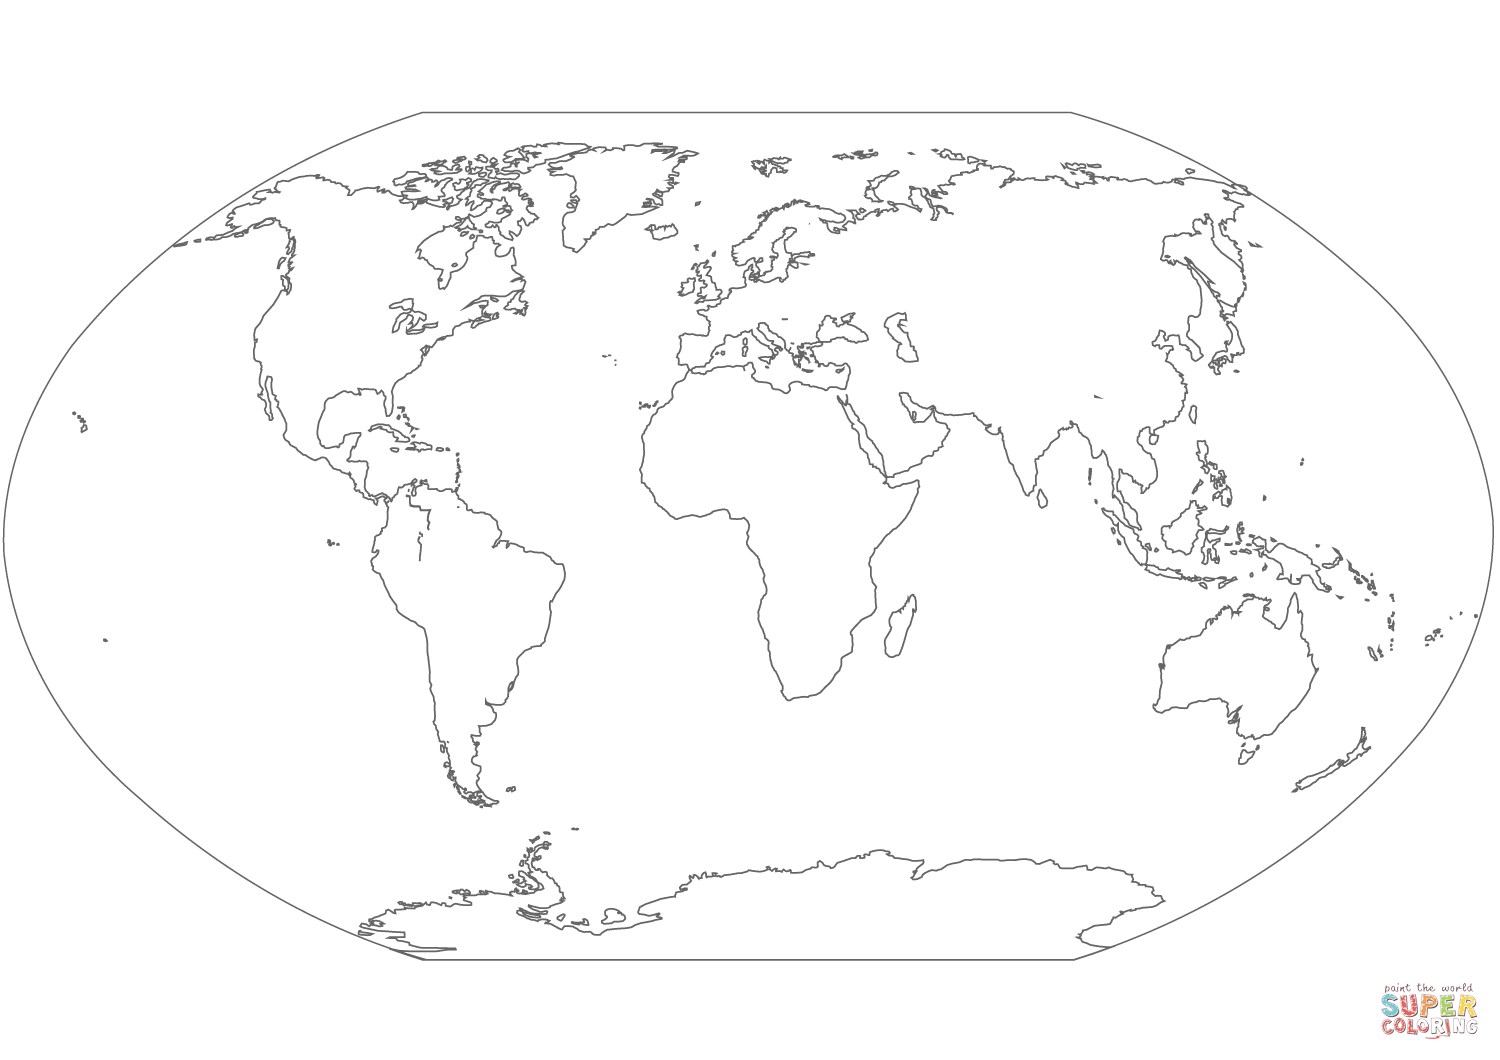 world map coloring pages to view printable version or download